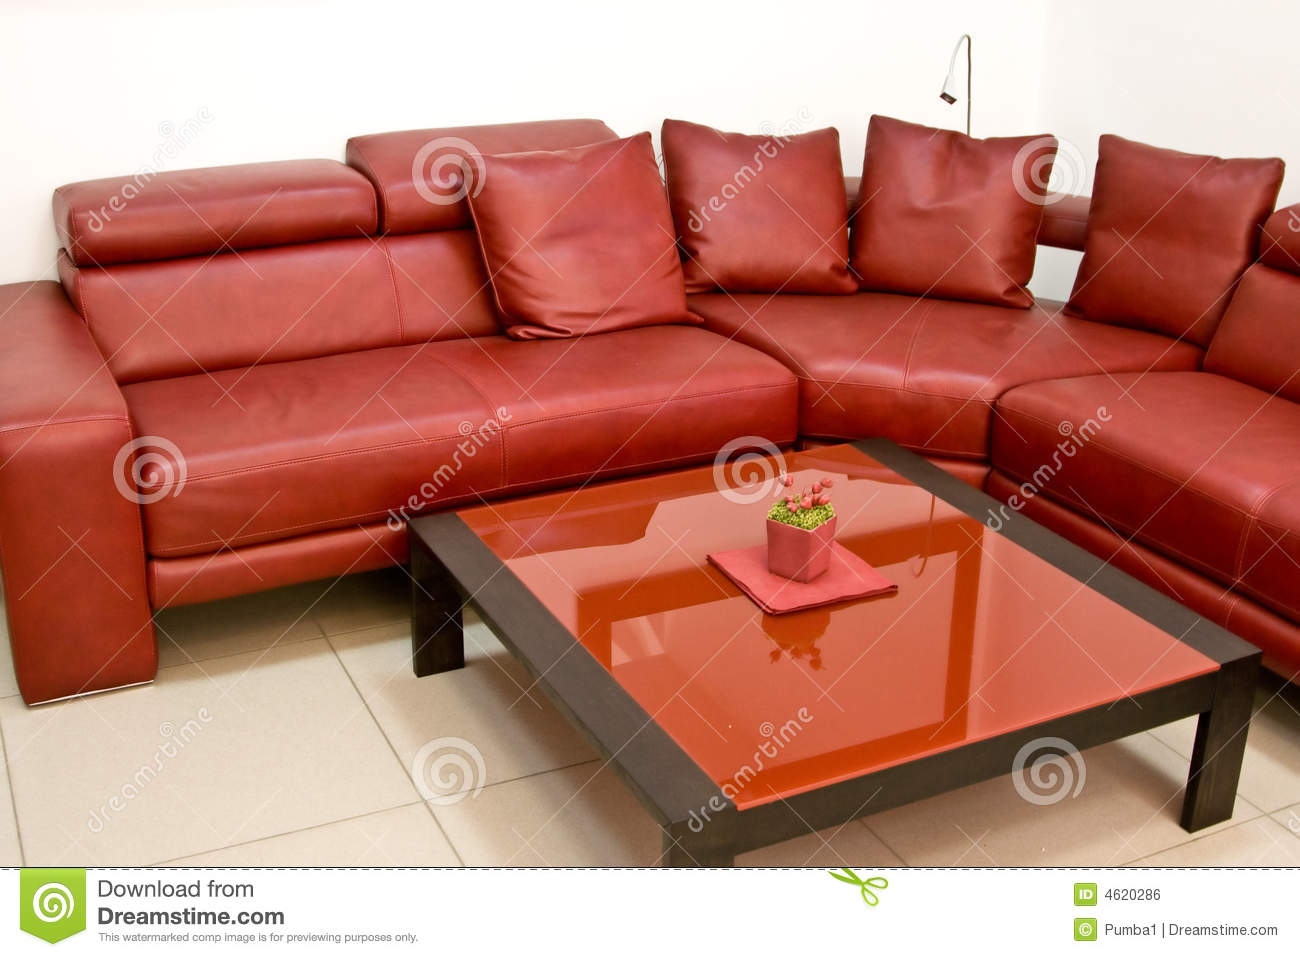 Fashionable Modern Interior With A Red Leather Sofa